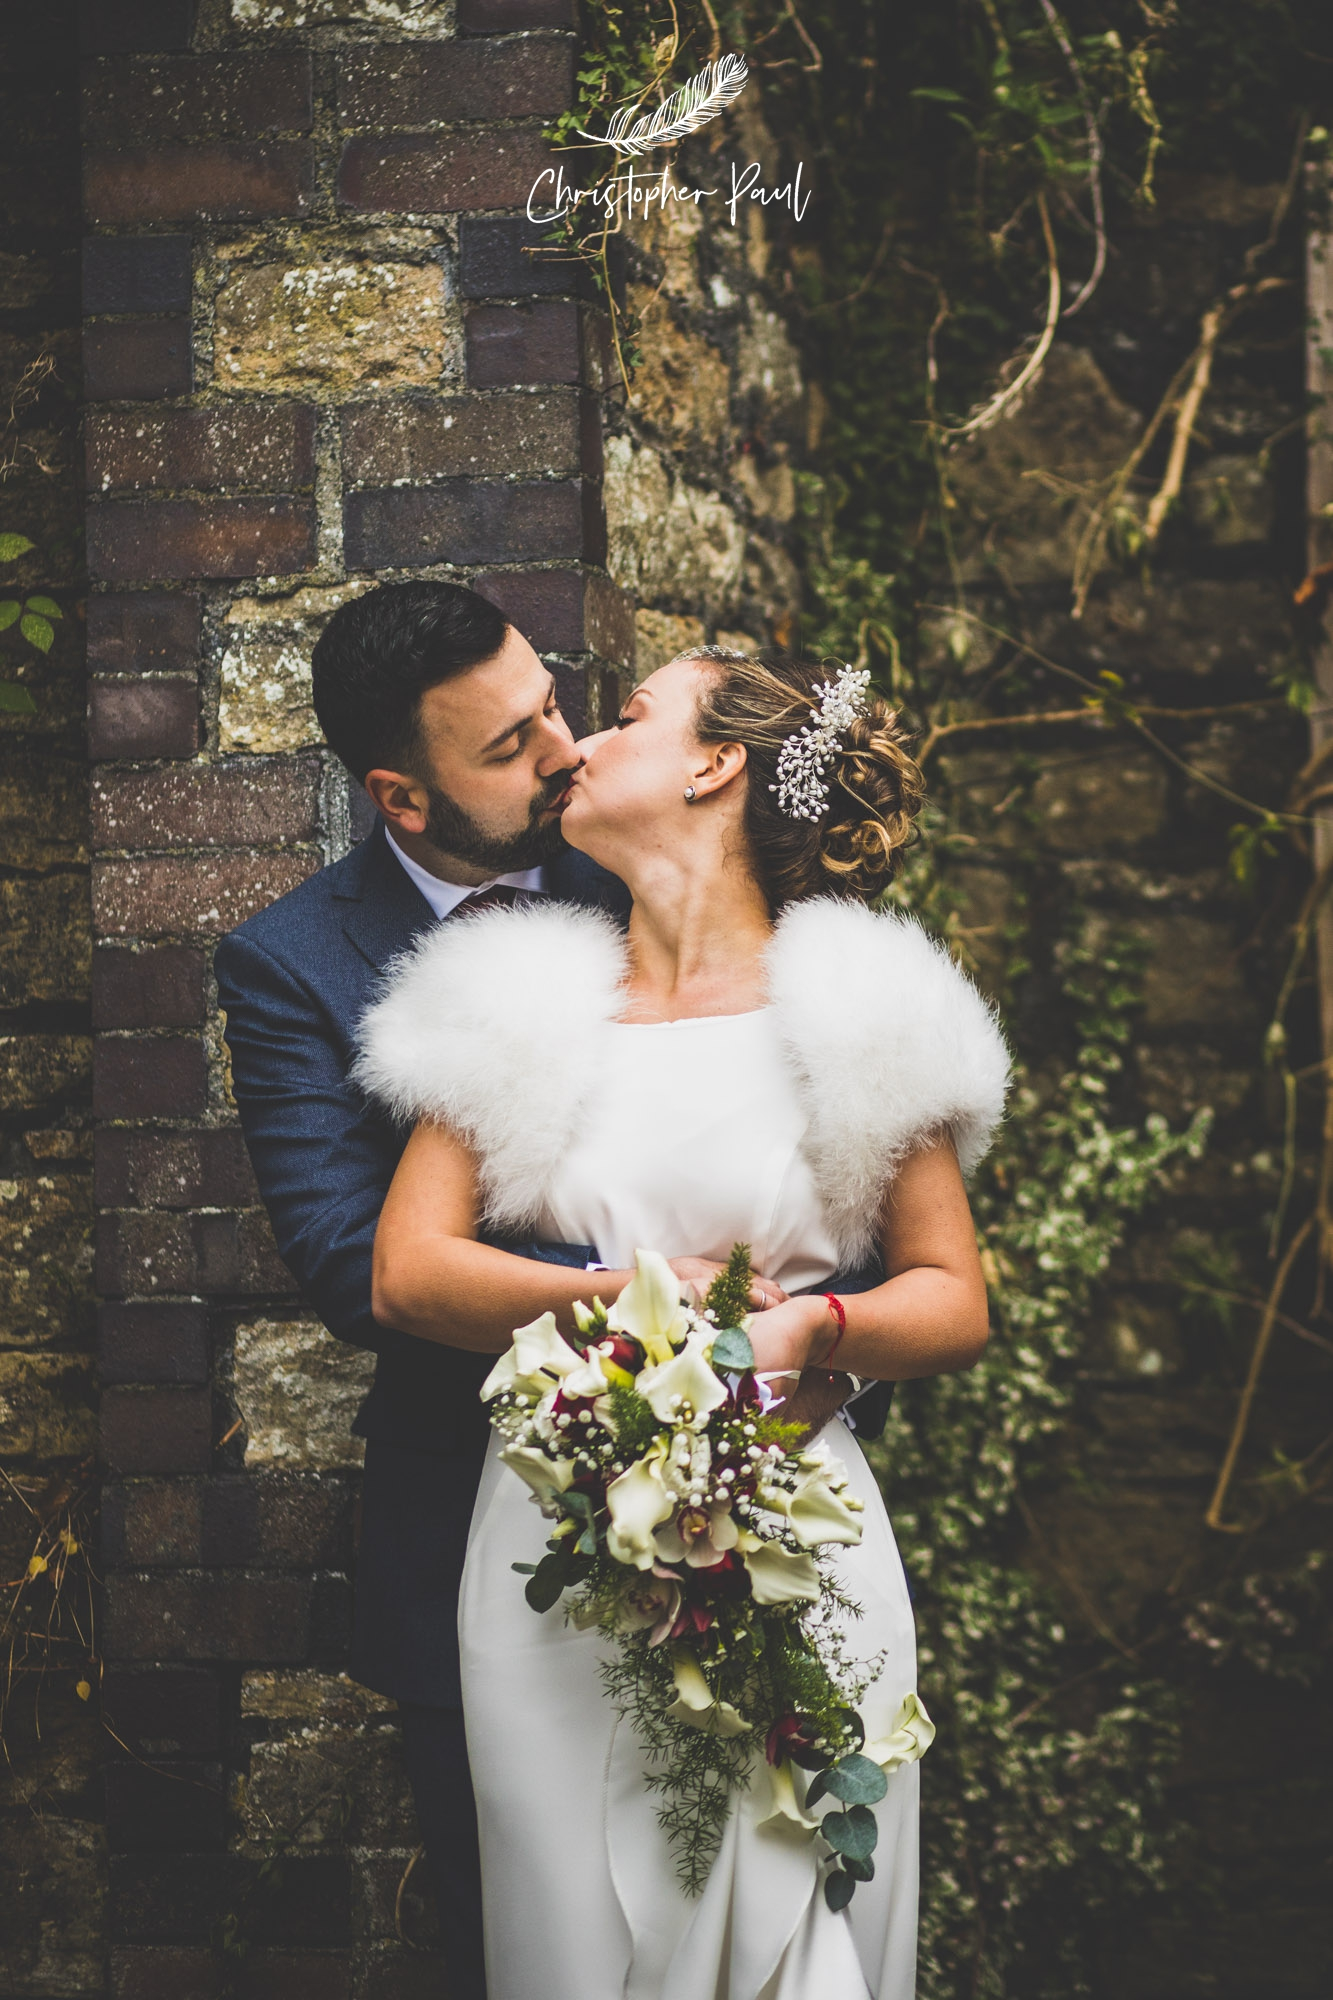 It was a perfect winter wedding with all the details perfectly planned. Those deep red flowers and Yani's wedding dress were both favourites of Becky and mine.